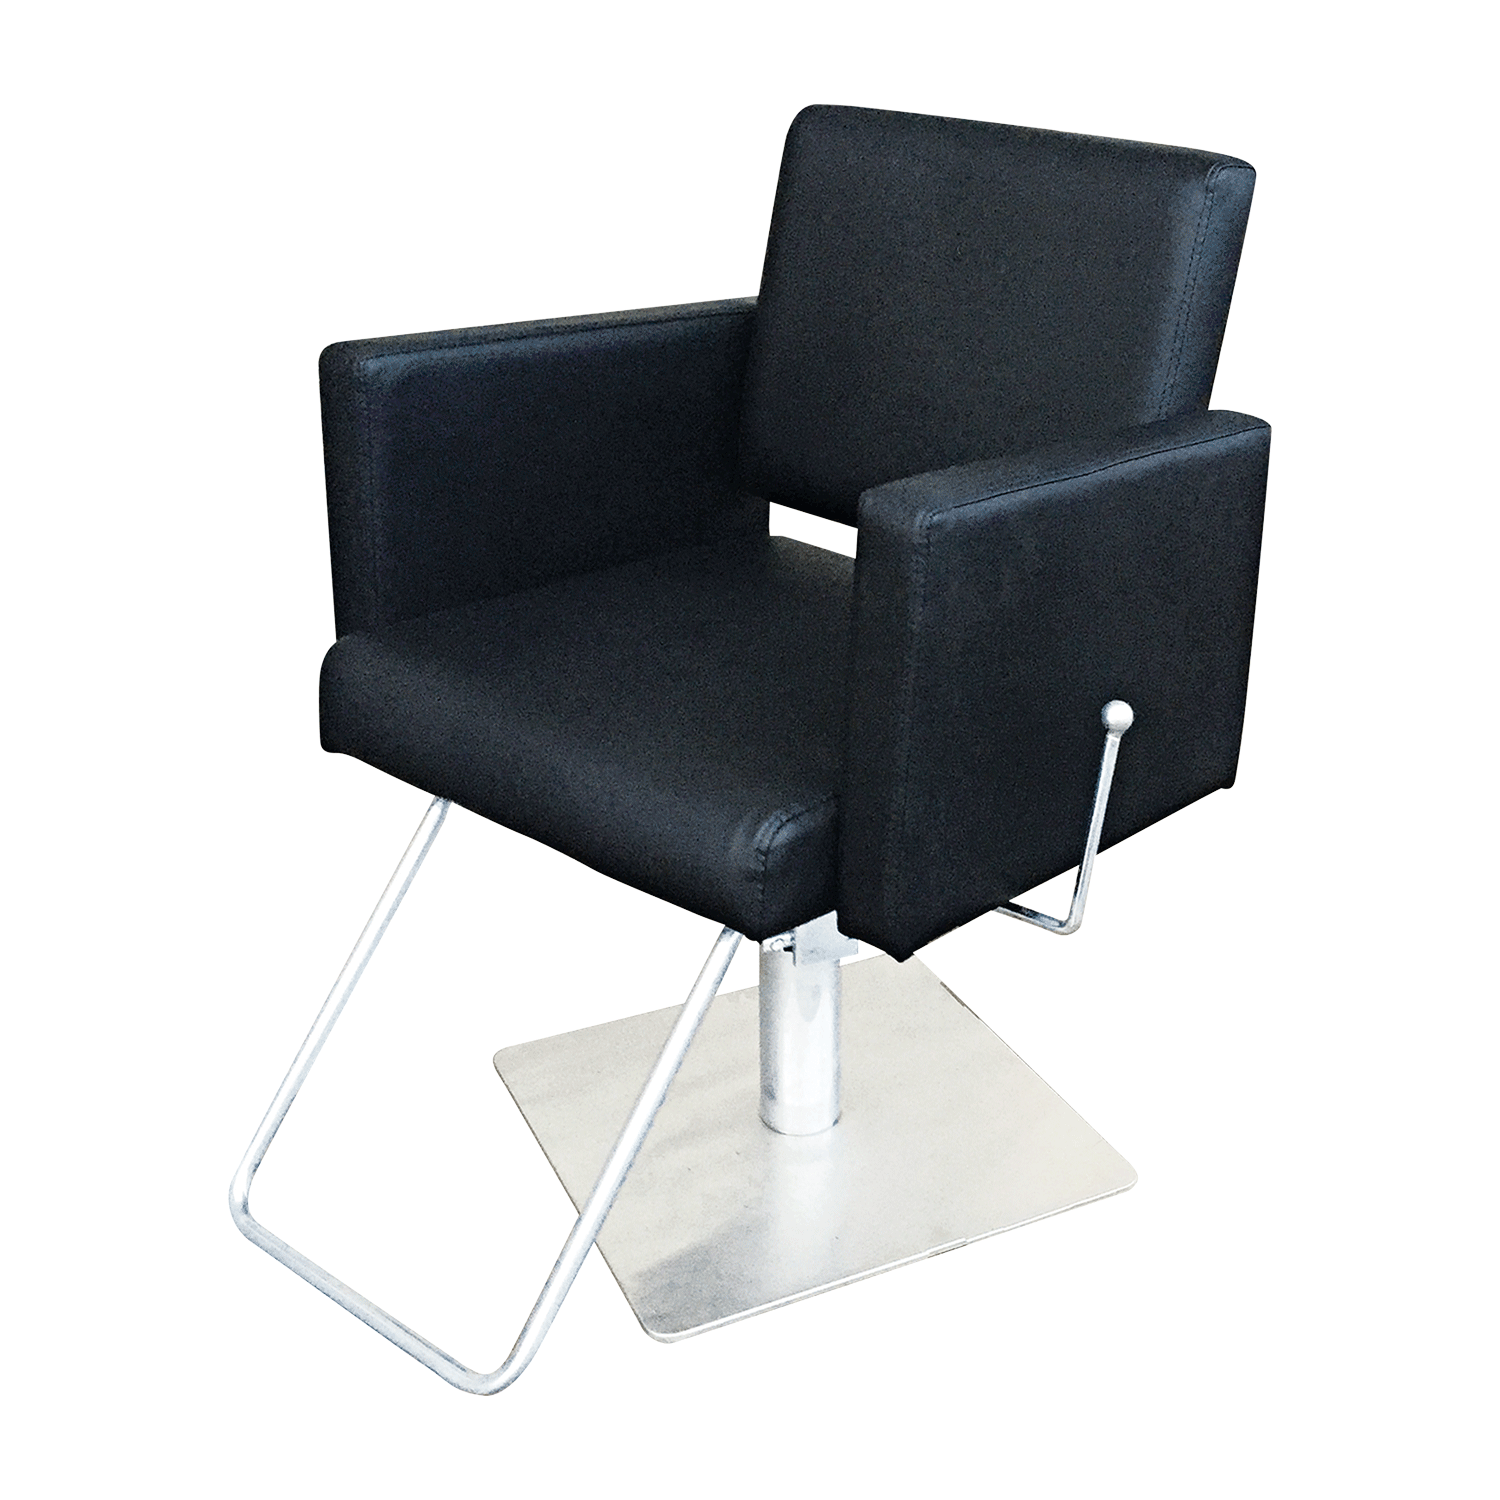 all purpose salon chairs folding with storage rack piper chair square base at cosmoprof equipment